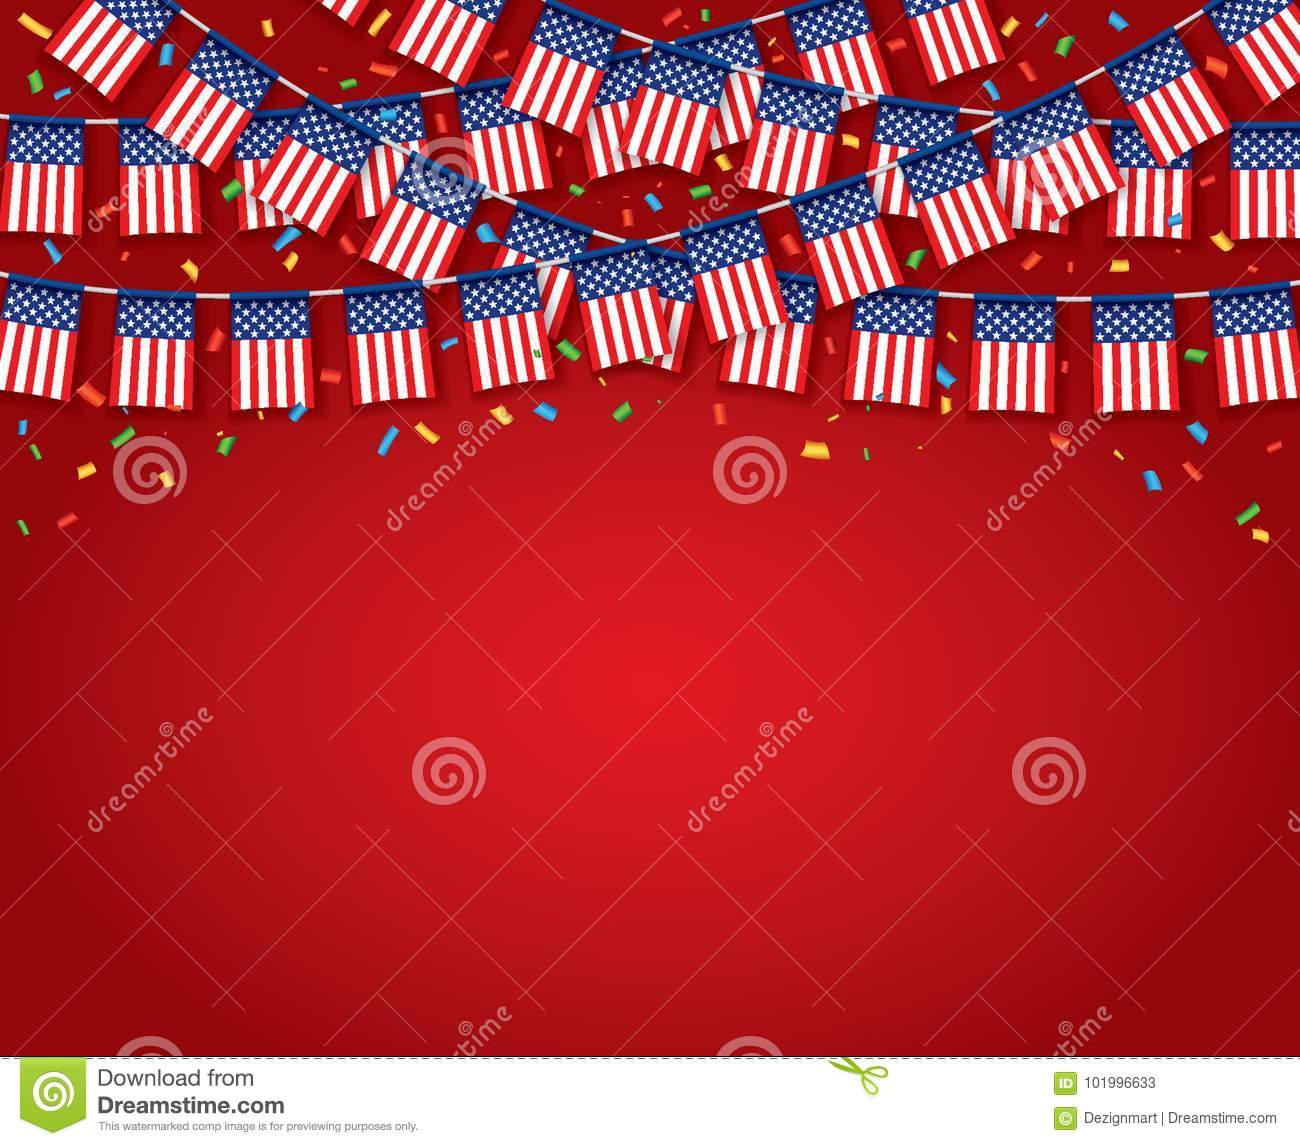 garland usa flags with red background stock vector illustration of